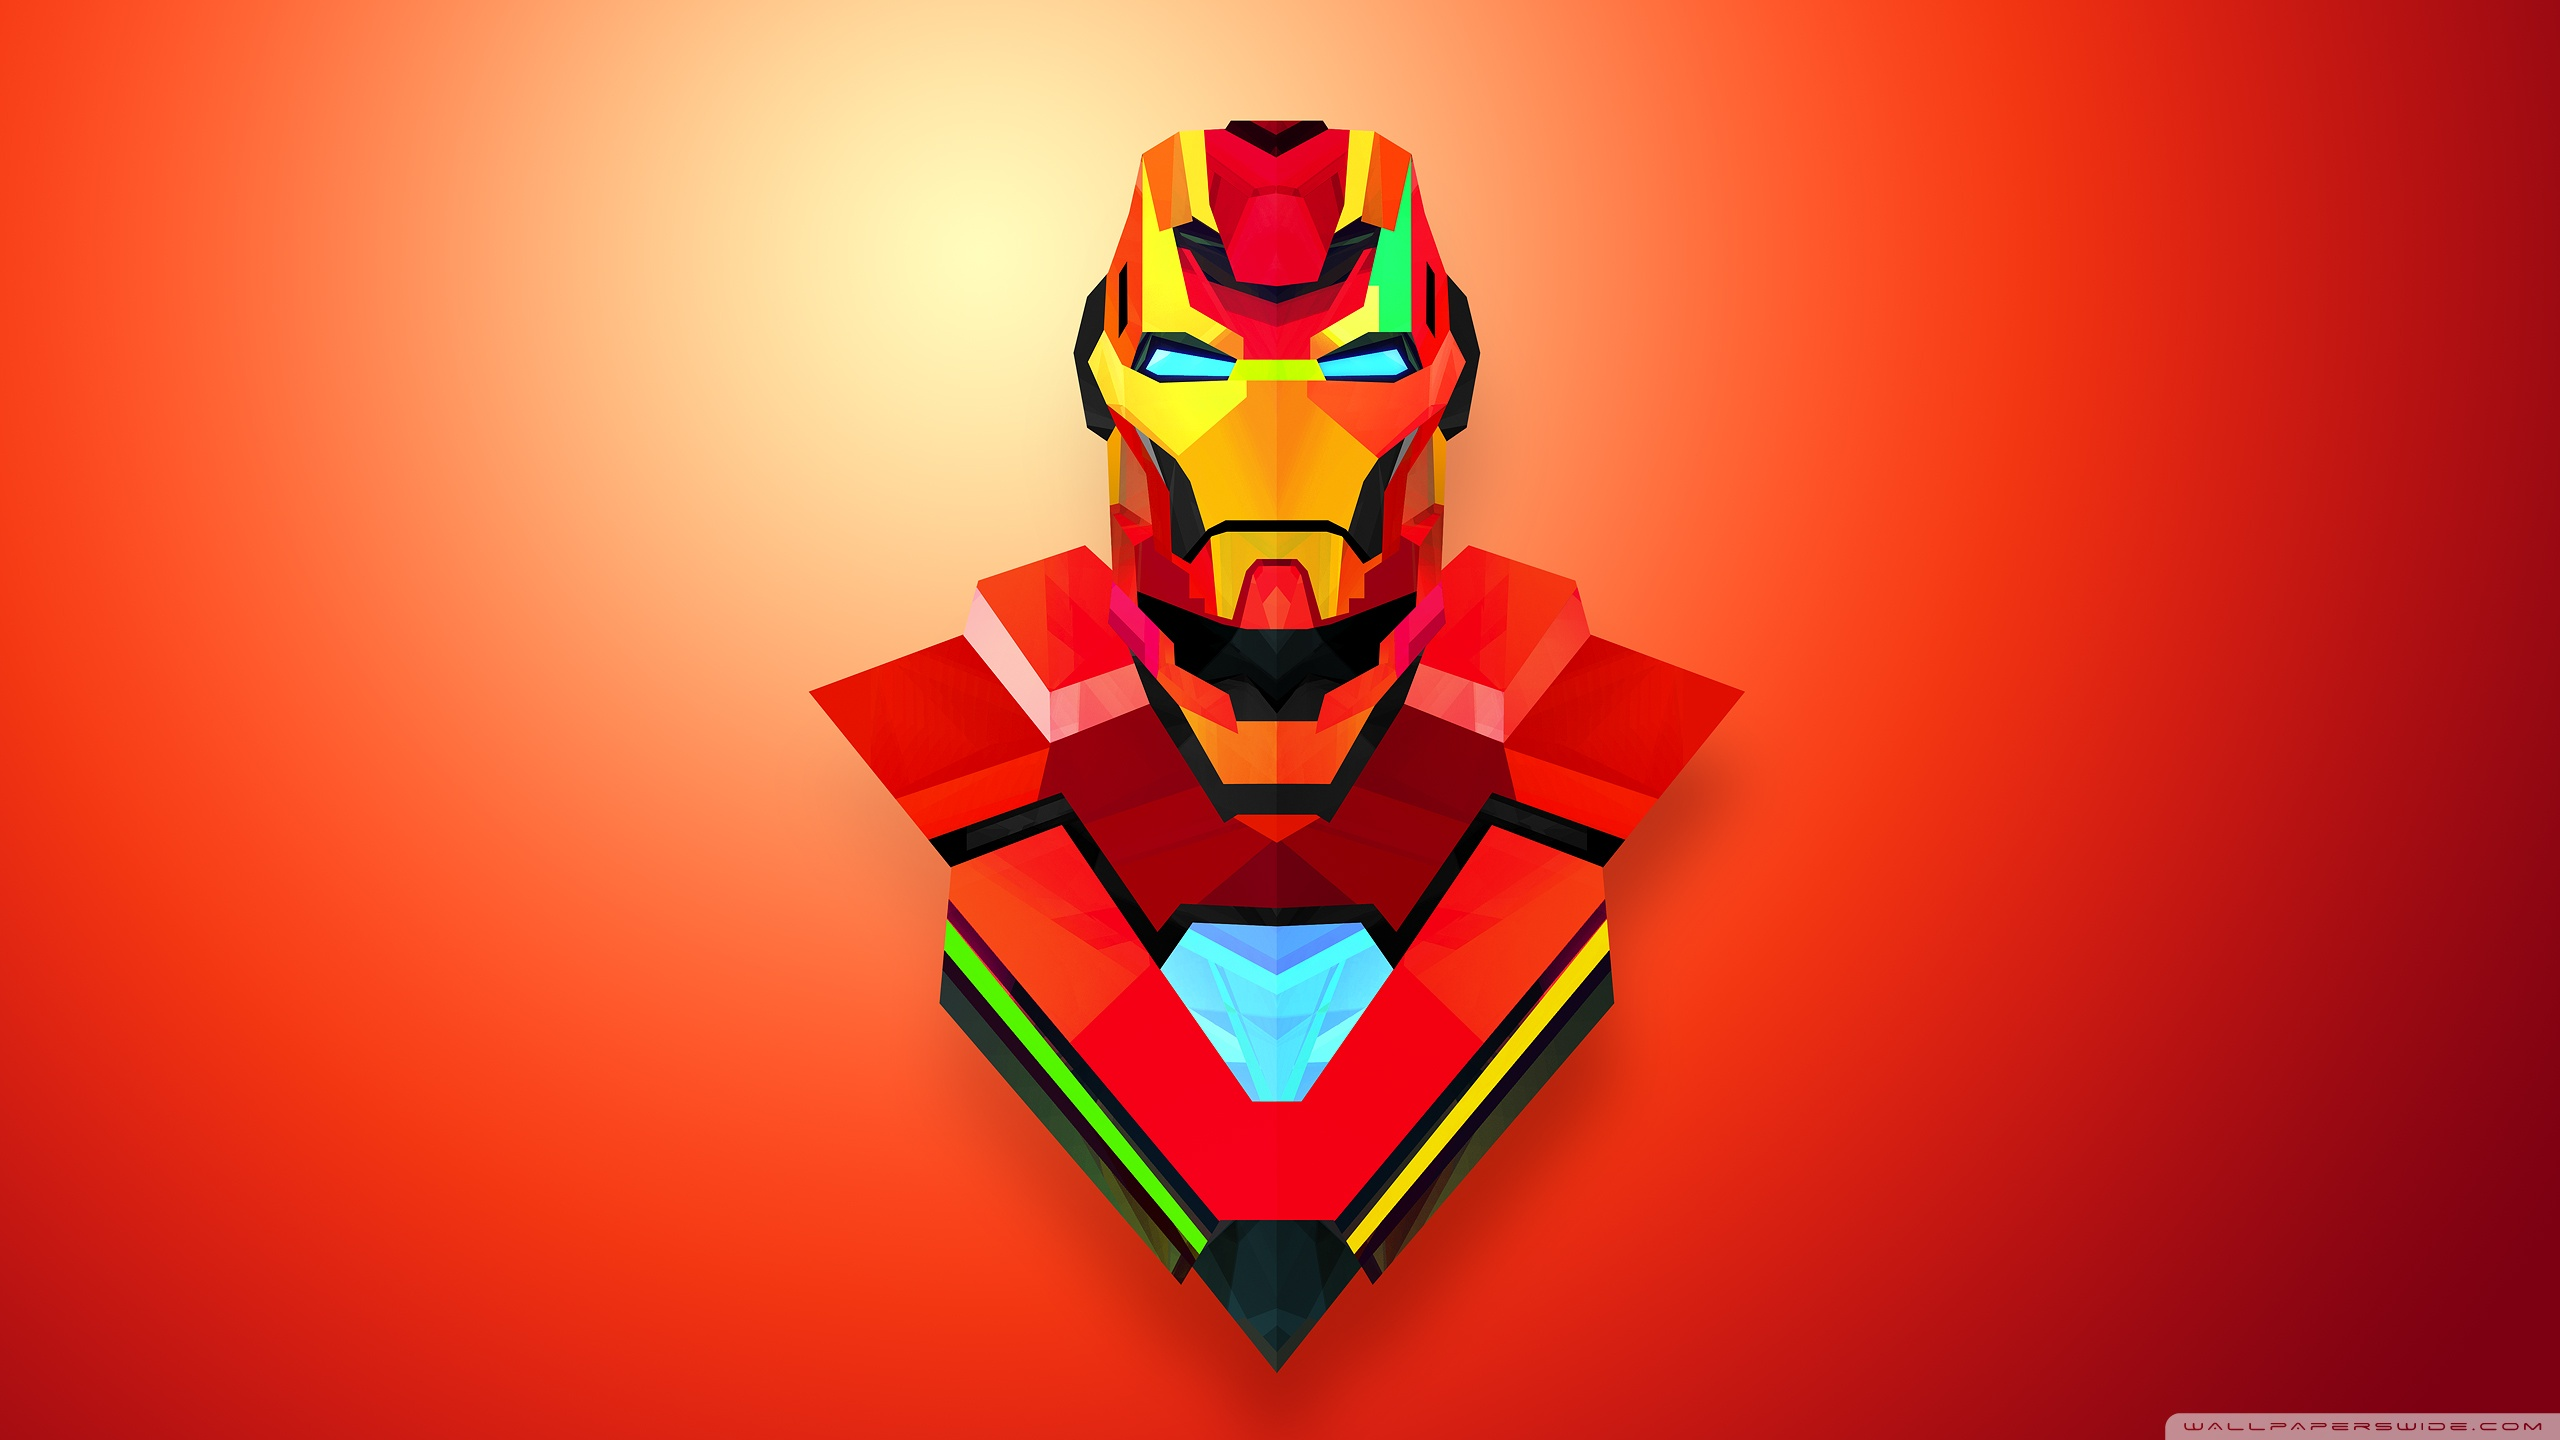 Irom Man Wallpaper